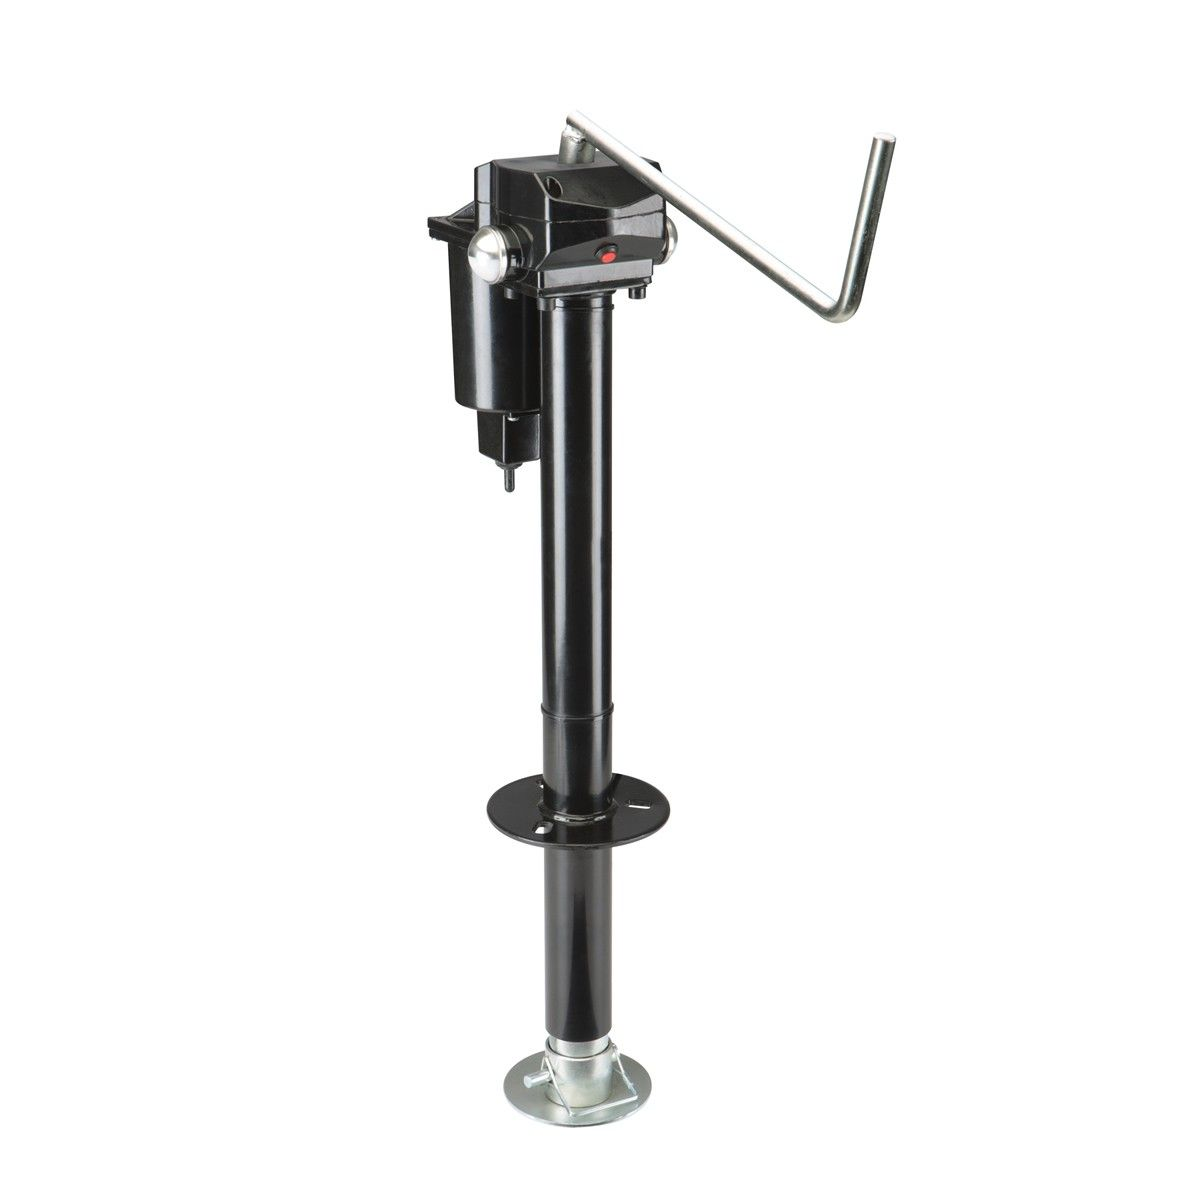 medium resolution of haul master 69899 3500 lb capacity electric trailer jack